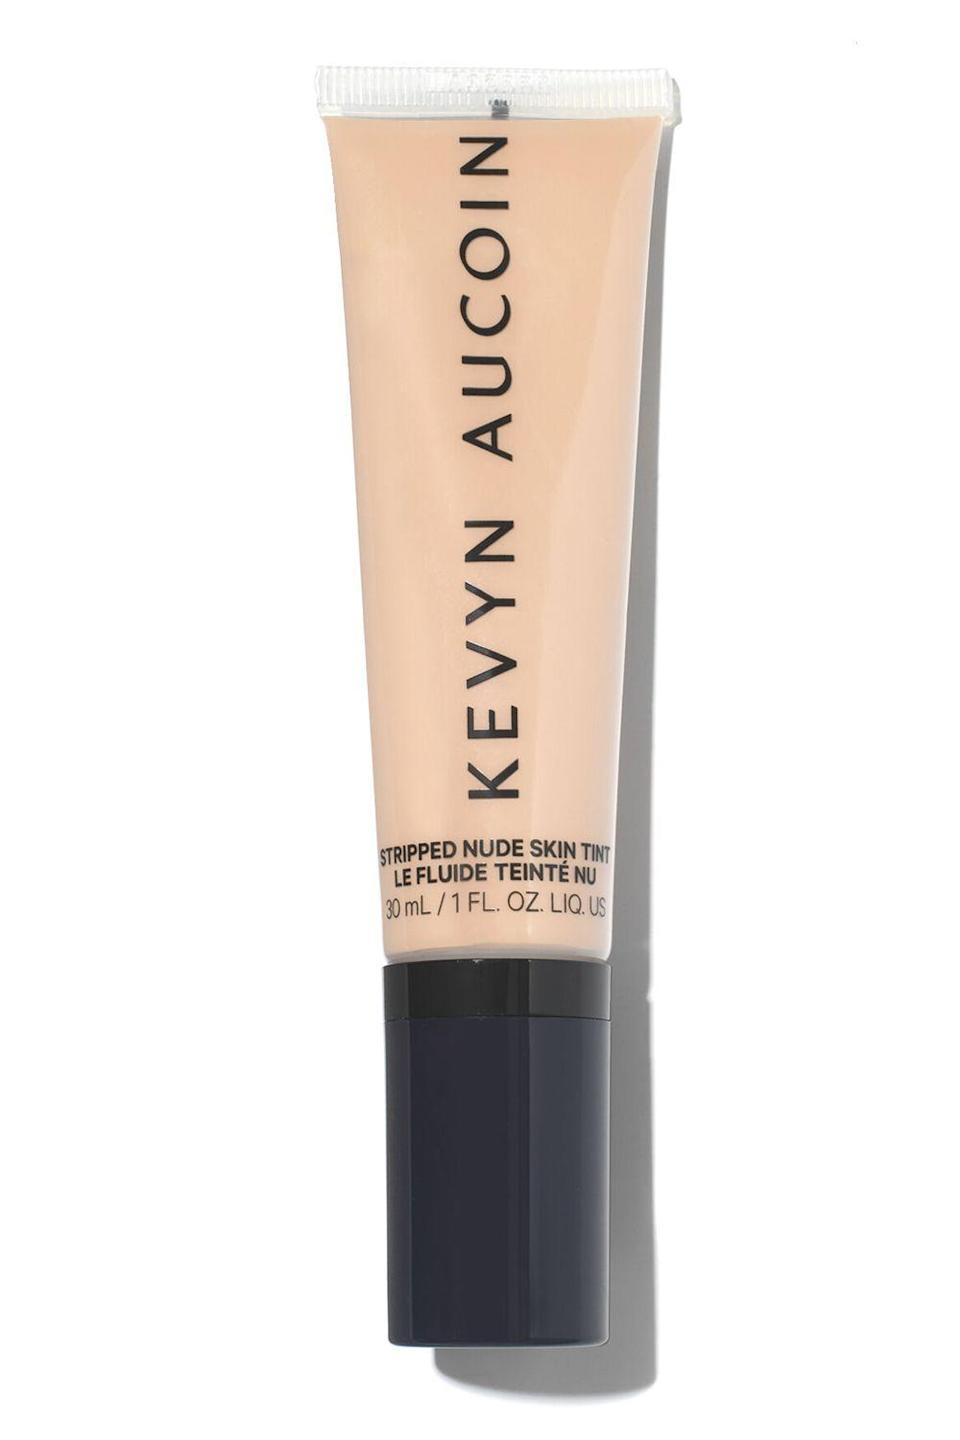 """<p><strong>Kevyn Aucoin</strong></p><p>revolve.com</p><p><strong>$42.00</strong></p><p><a href=""""https://go.redirectingat.com?id=74968X1596630&url=https%3A%2F%2Fwww.revolve.com%2Fdp%2FKEVR-WU298%2F&sref=https%3A%2F%2Fwww.cosmopolitan.com%2Fstyle-beauty%2Fbeauty%2Fg36094404%2Fbest-skin-tints%2F"""" rel=""""nofollow noopener"""" target=""""_blank"""" data-ylk=""""slk:Shop Now"""" class=""""link rapid-noclick-resp"""">Shop Now</a></p><p>This liquid skin tint is <strong>perfect for getting the no-makeup <a href=""""https://www.cosmopolitan.com/style-beauty/beauty/g29548485/best-makeup-products/"""" rel=""""nofollow noopener"""" target=""""_blank"""" data-ylk=""""slk:makeup"""" class=""""link rapid-noclick-resp"""">makeup</a> loo</strong><strong>k</strong> on days when you're feeling low-key, but it's also super buildable which means you can add more layers to create more coverage. No matter how much you apply it still feels lightweight and never gets cakey either.</p>"""